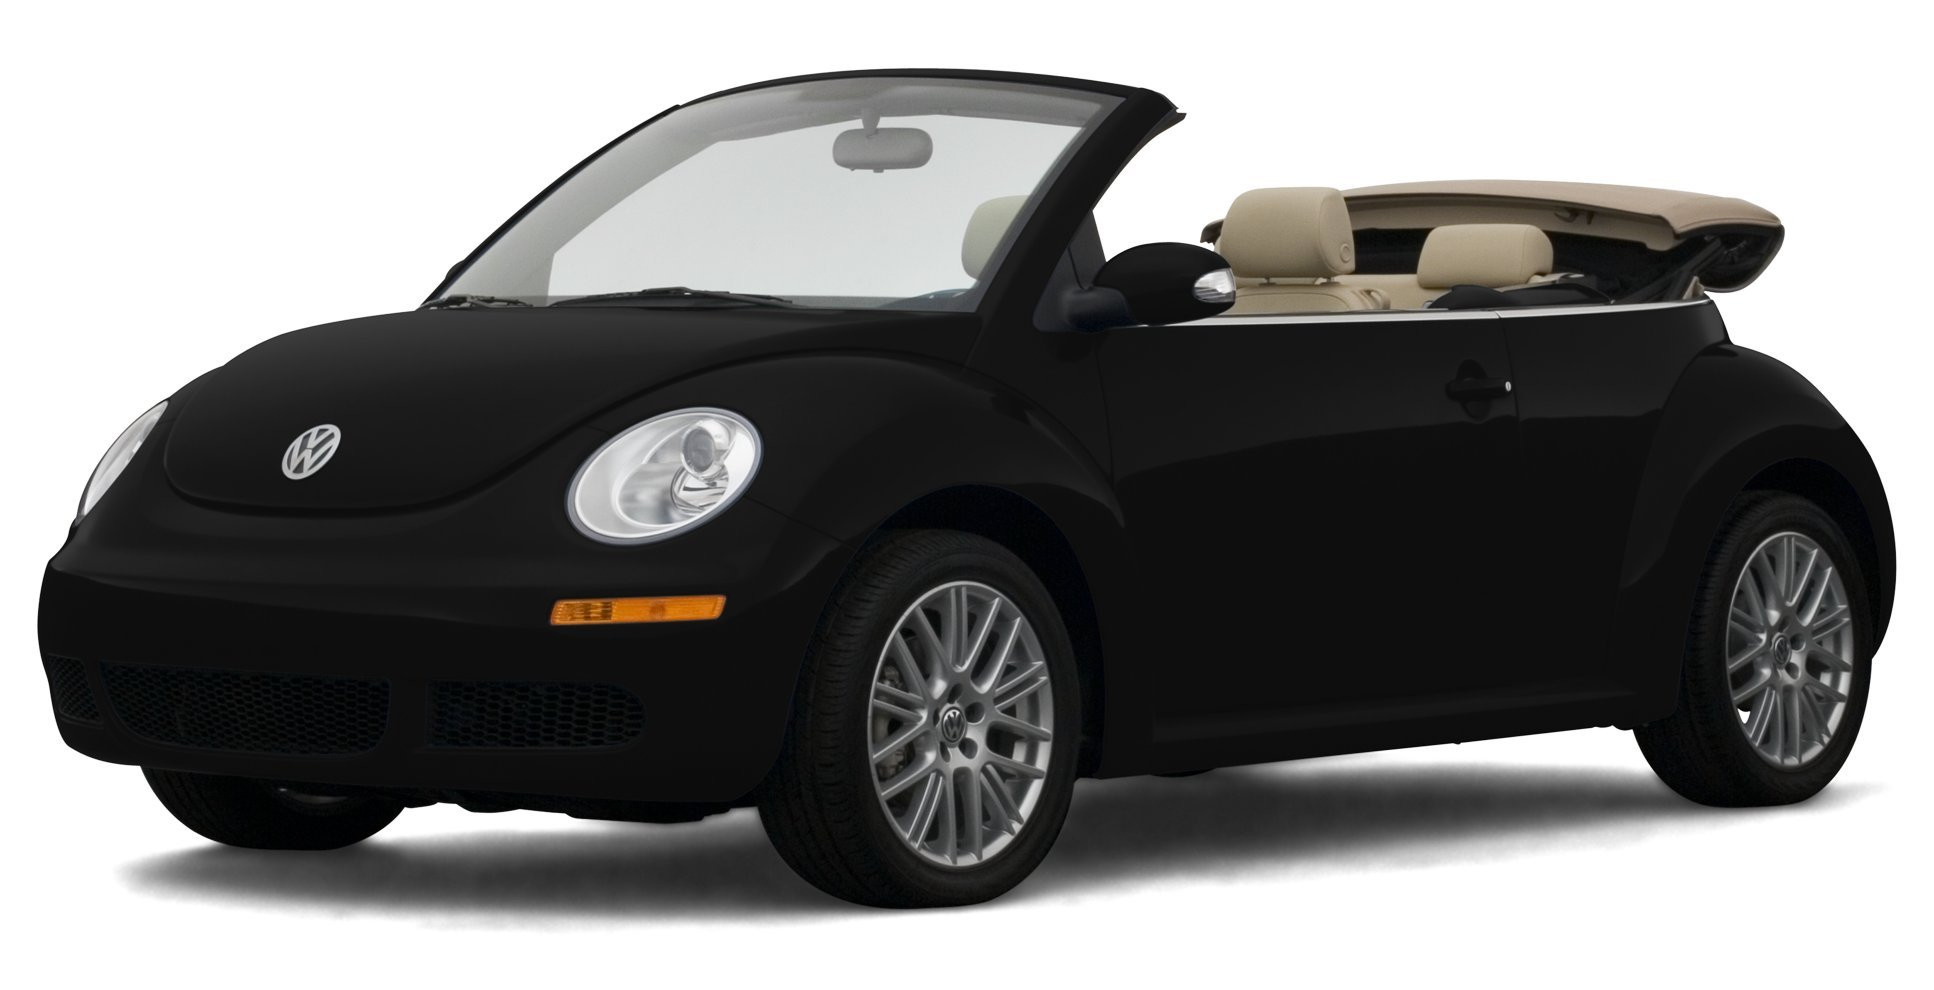 New Beetle Flower Vase Of Amazon Com 2007 Volkswagen Beetle Reviews Images and Specs Vehicles In 2007 Volkswagen Beetle 2 Door Automatic Transmission